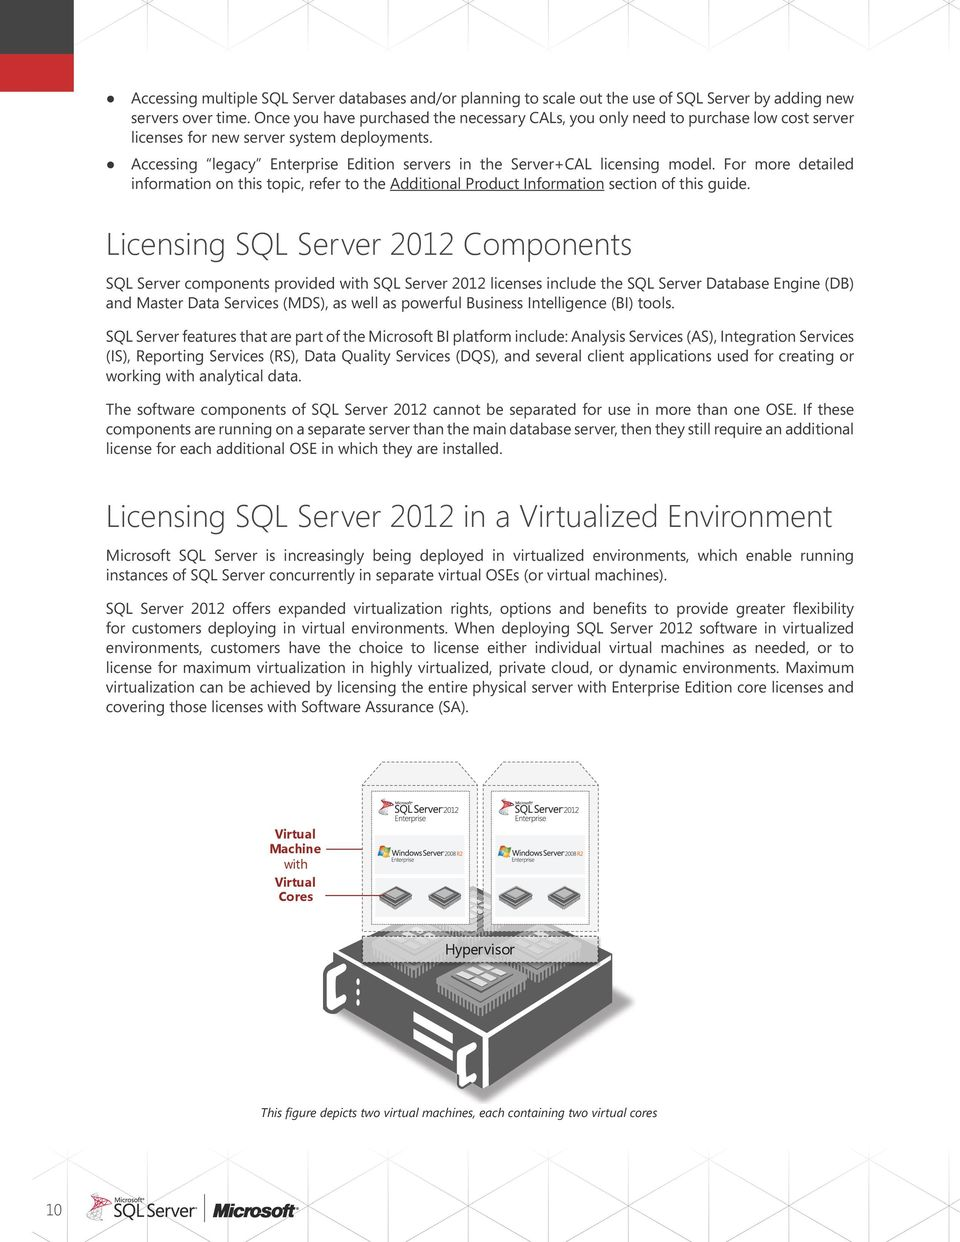 Accessing legacy Enterprise Edition servers in the Server+CAL licensing model. For more detailed information on this topic, refer to the Additional Product Information section of this guide.